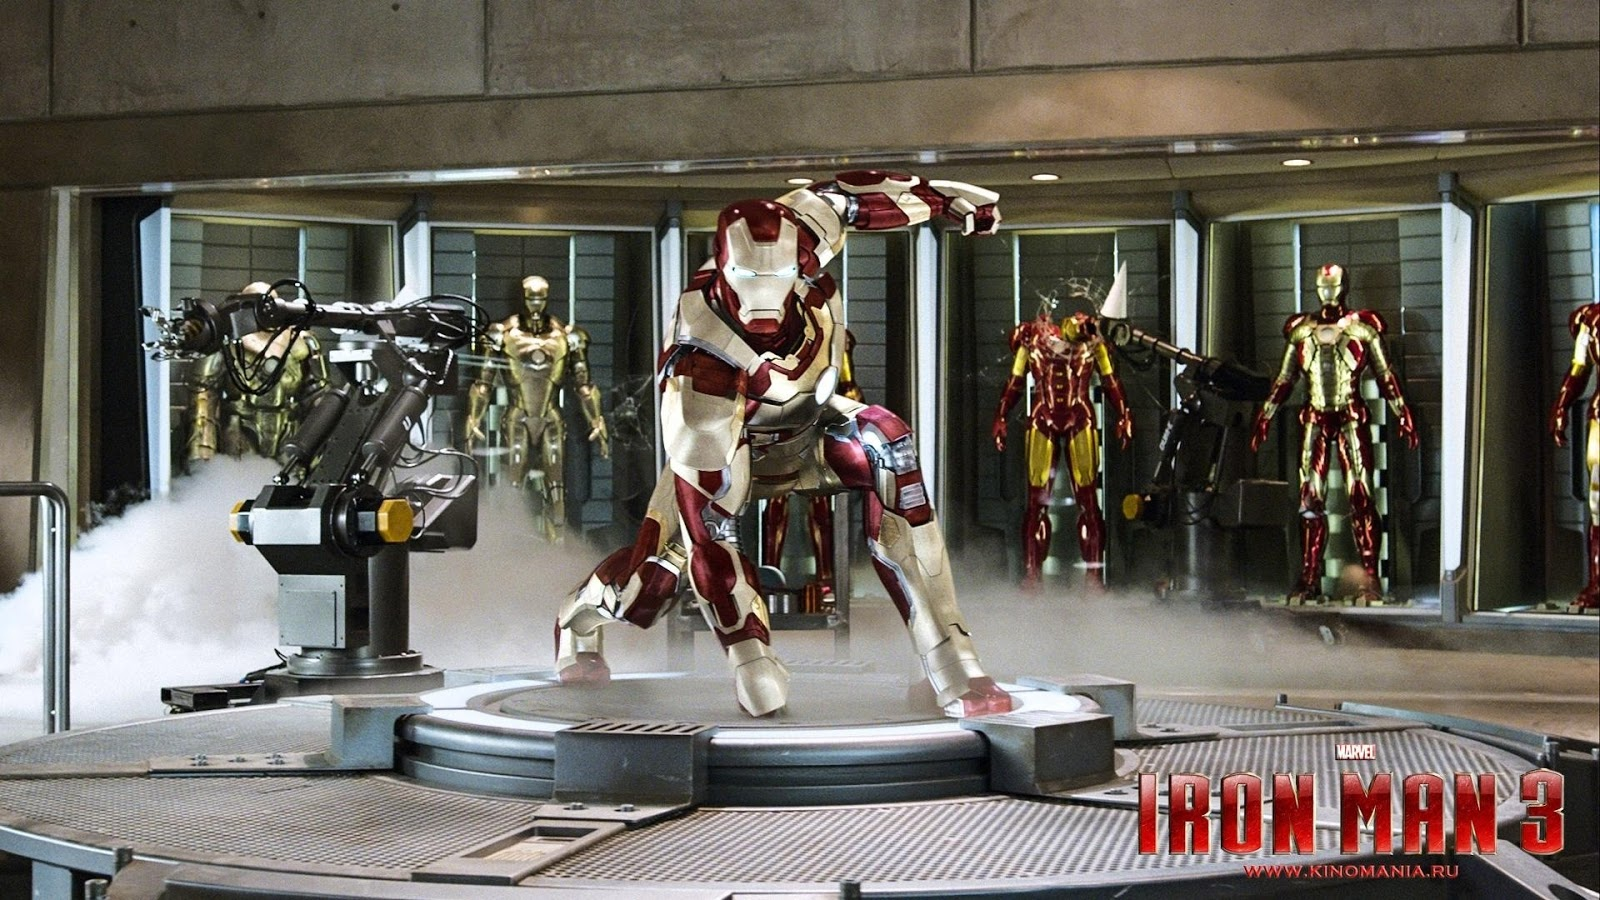 http://2.bp.blogspot.com/-jzSXDPxLMq4/UOhKULeaX4I/AAAAAAAALH8/PY3bR9Da6pw/s1600/iron-man-3-wallpapers-hd+%25284%2529.jpg